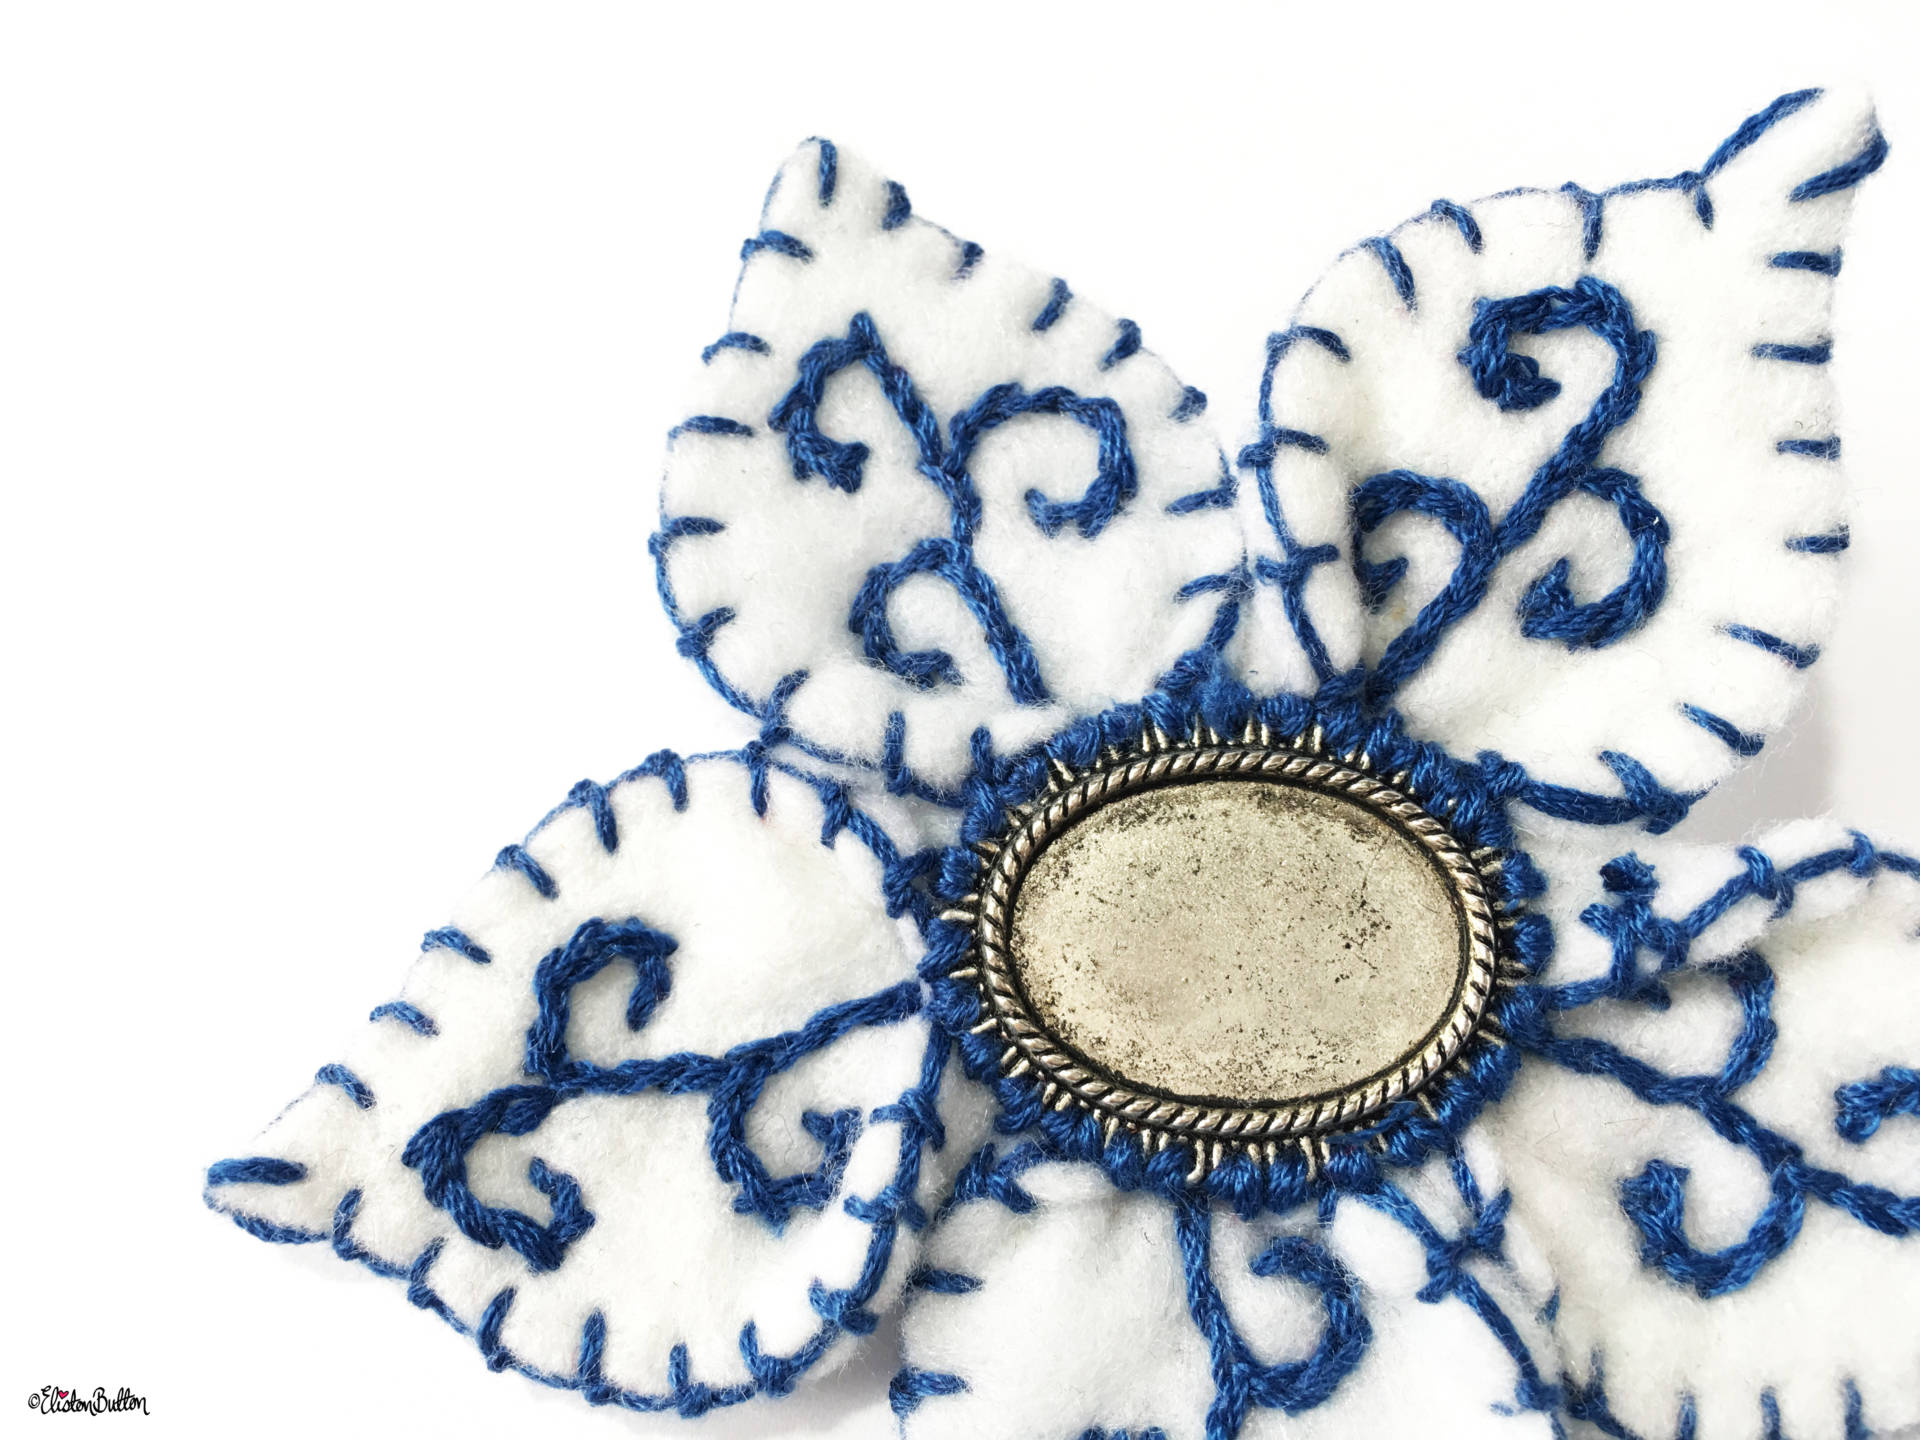 Blue and White Embroidered Felt Flower Brooch by Eliston Button Close Up - Create 30 - No. 14 - Blue and White Embroidered Felt Flower Brooch at www.elistonbutton.com - Eliston Button - That Crafty Kid – Art, Design, Craft & Adventure.